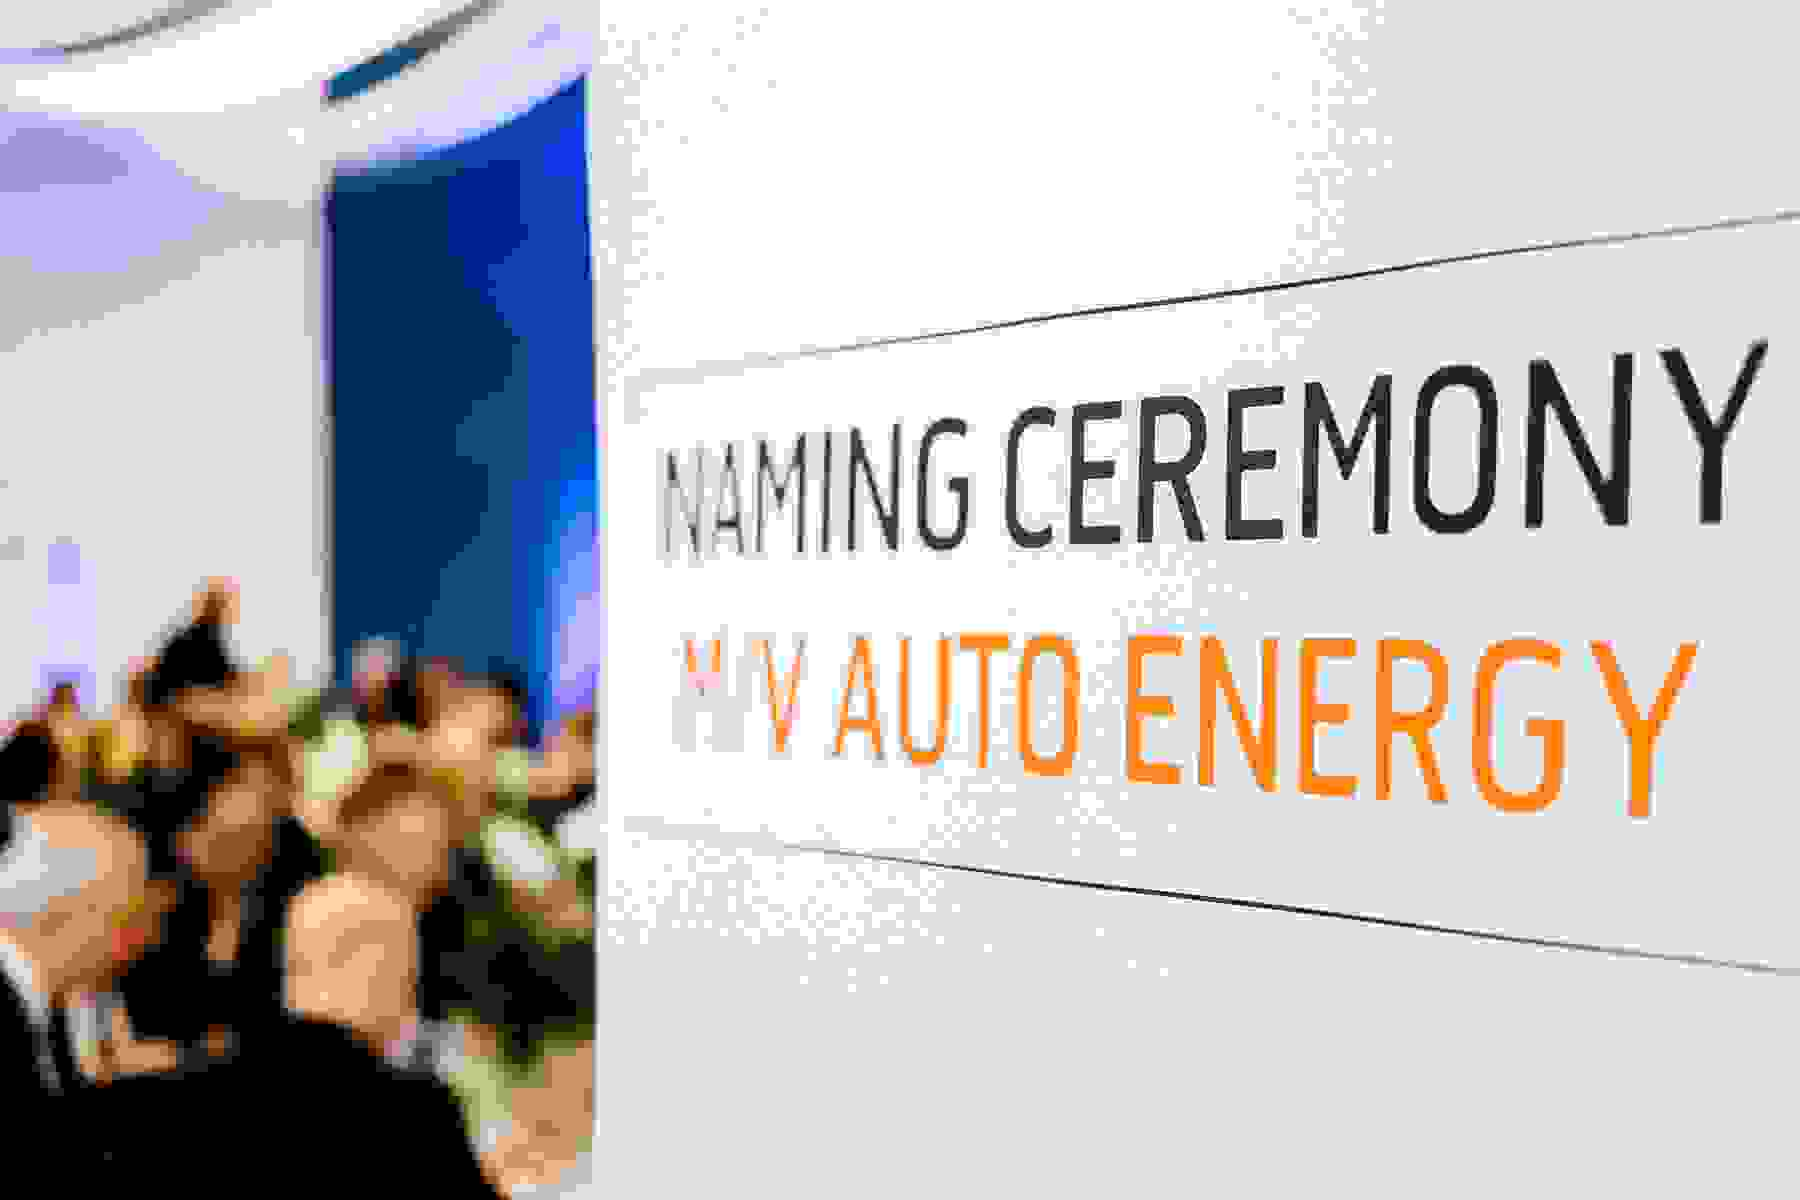 Official Naming Ceremony Videos